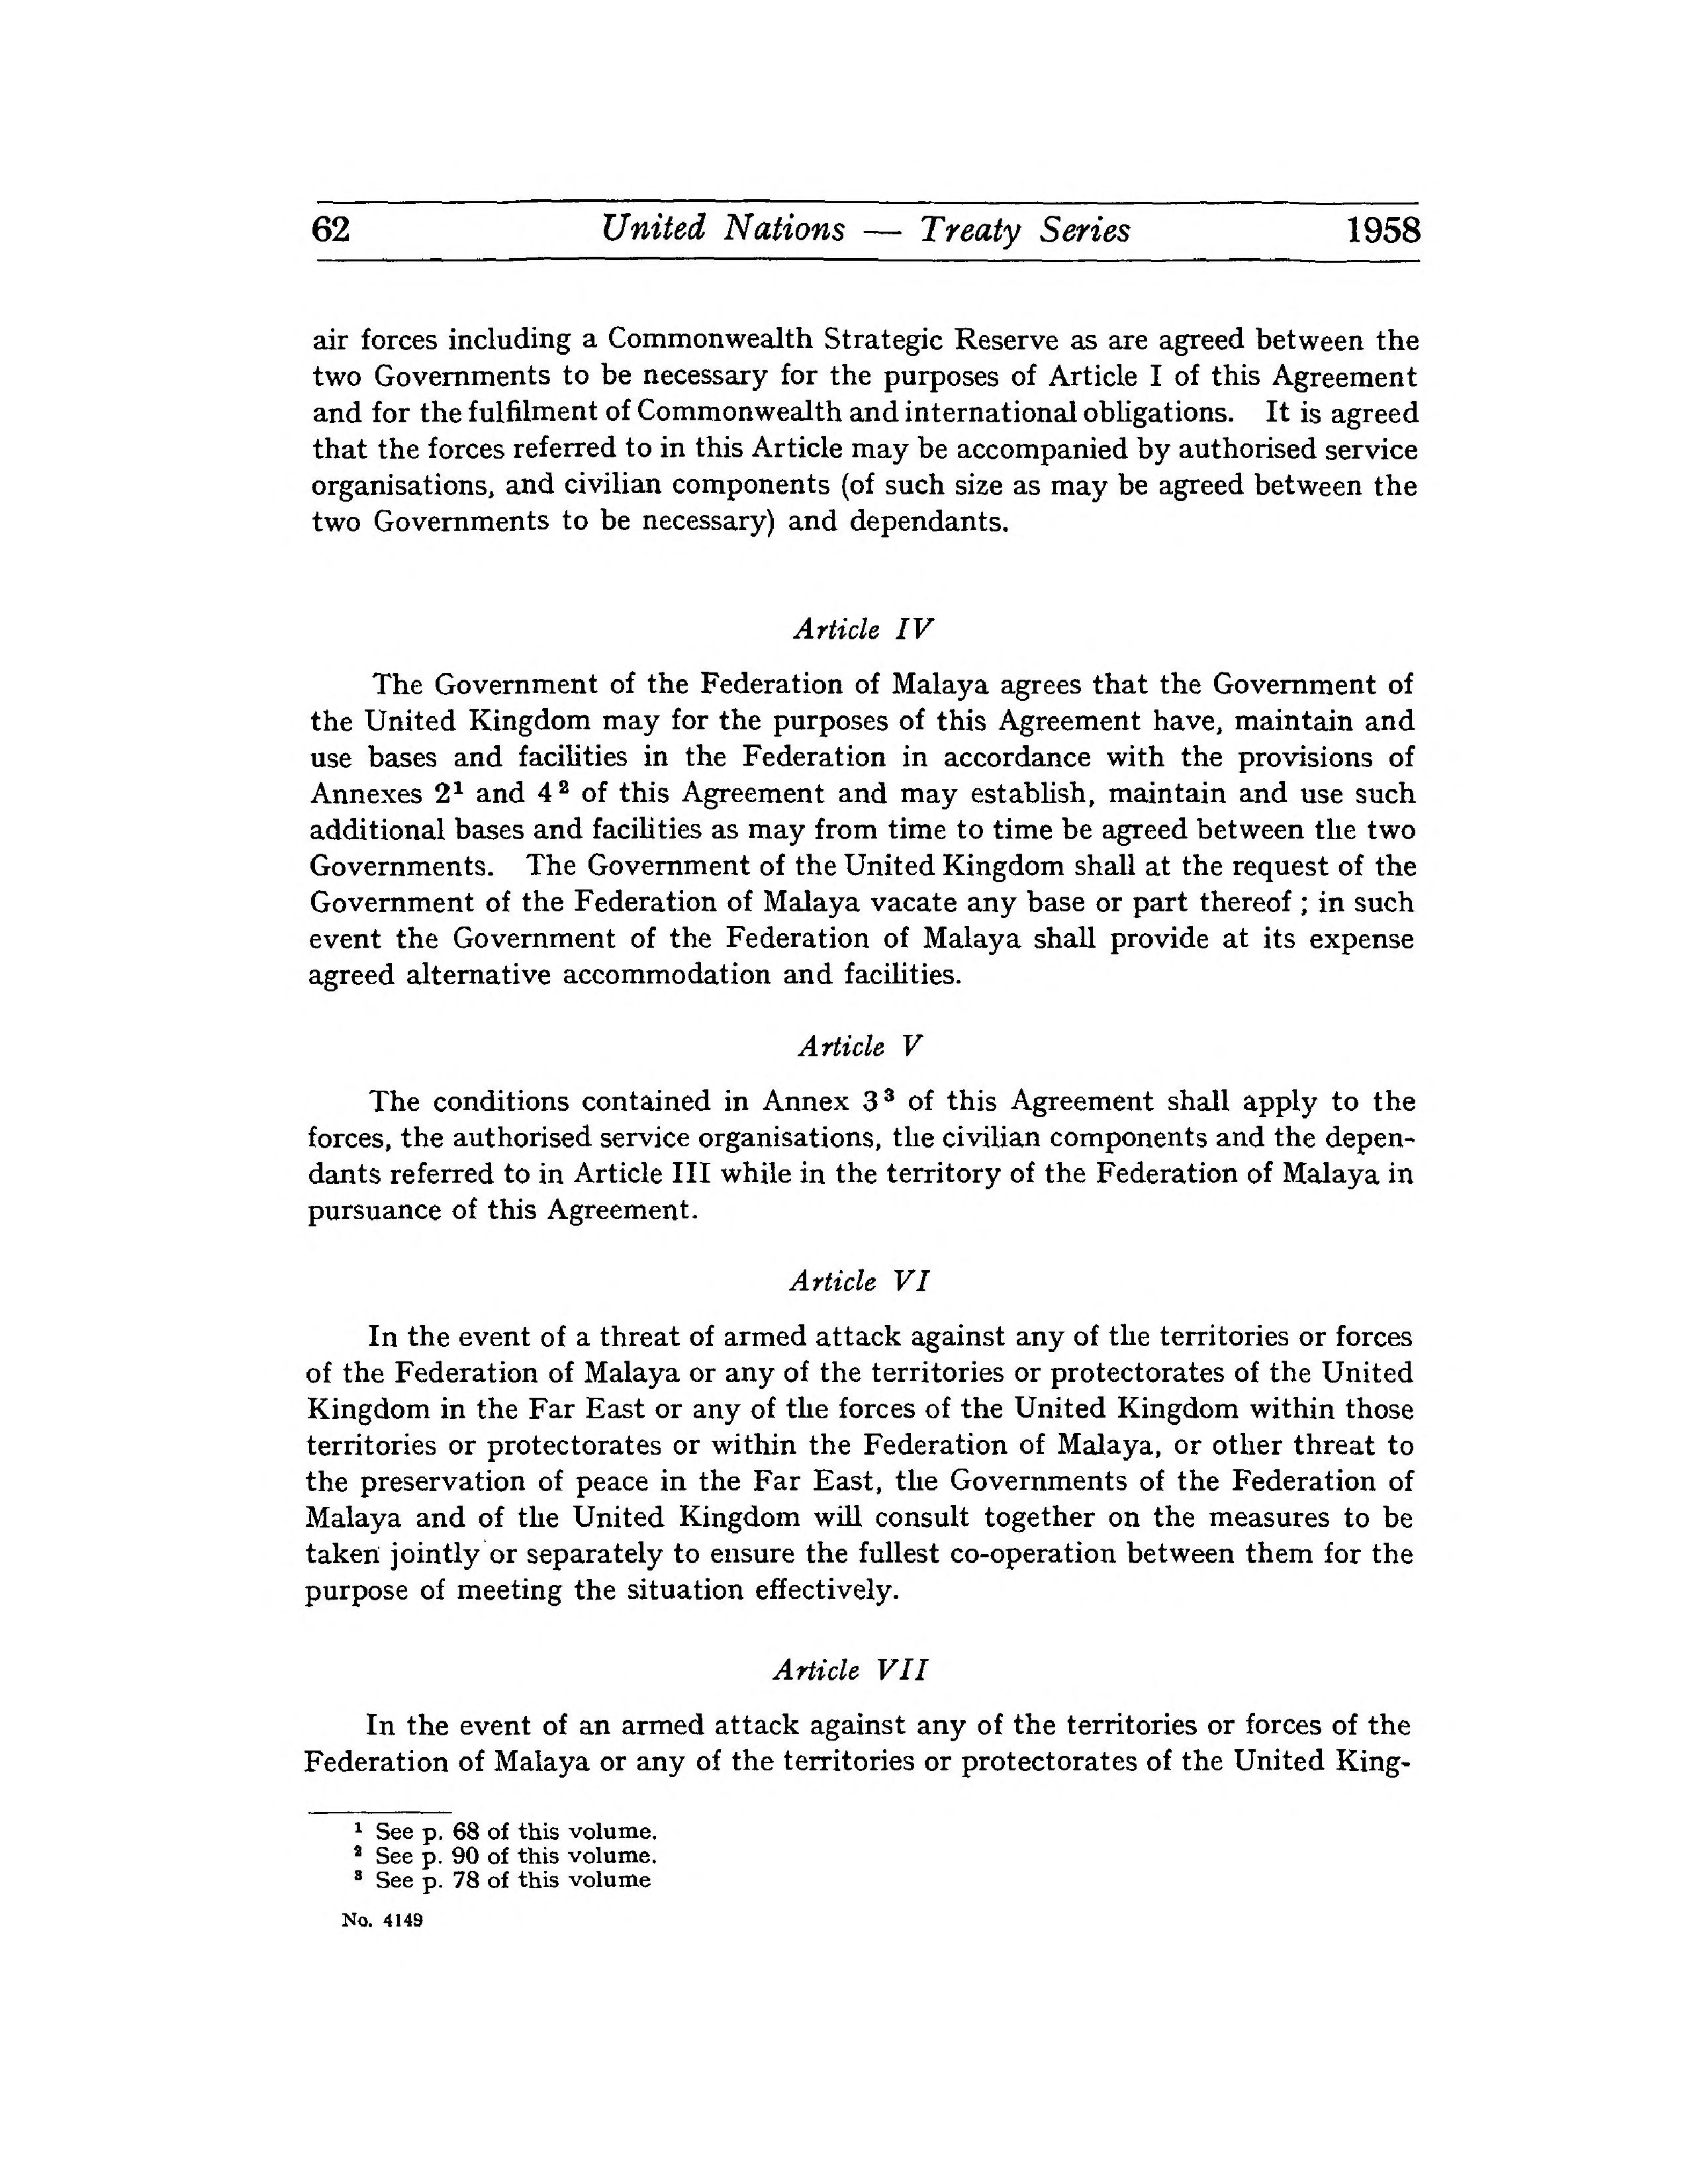 Pageagreement On External Defence And Mutual Assistance Between The